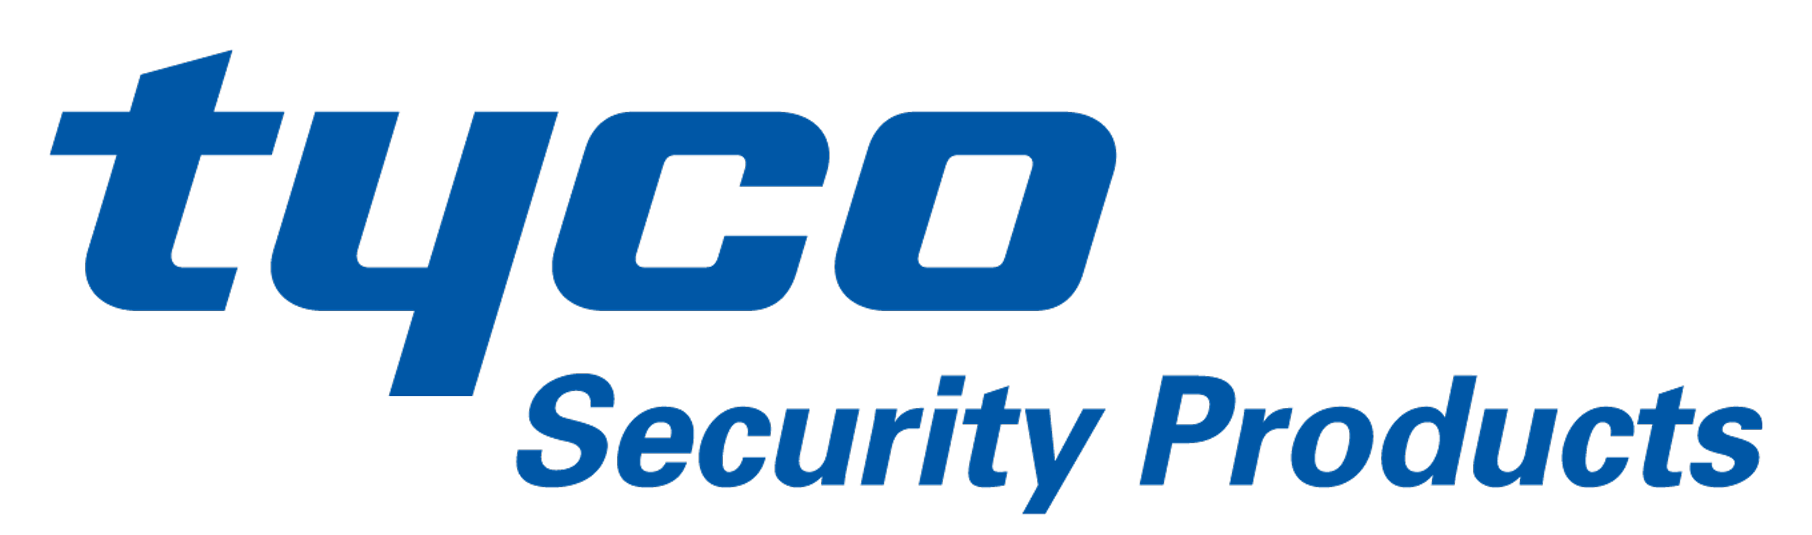 Tyco Security Products (Johnson Controls) Company Logo